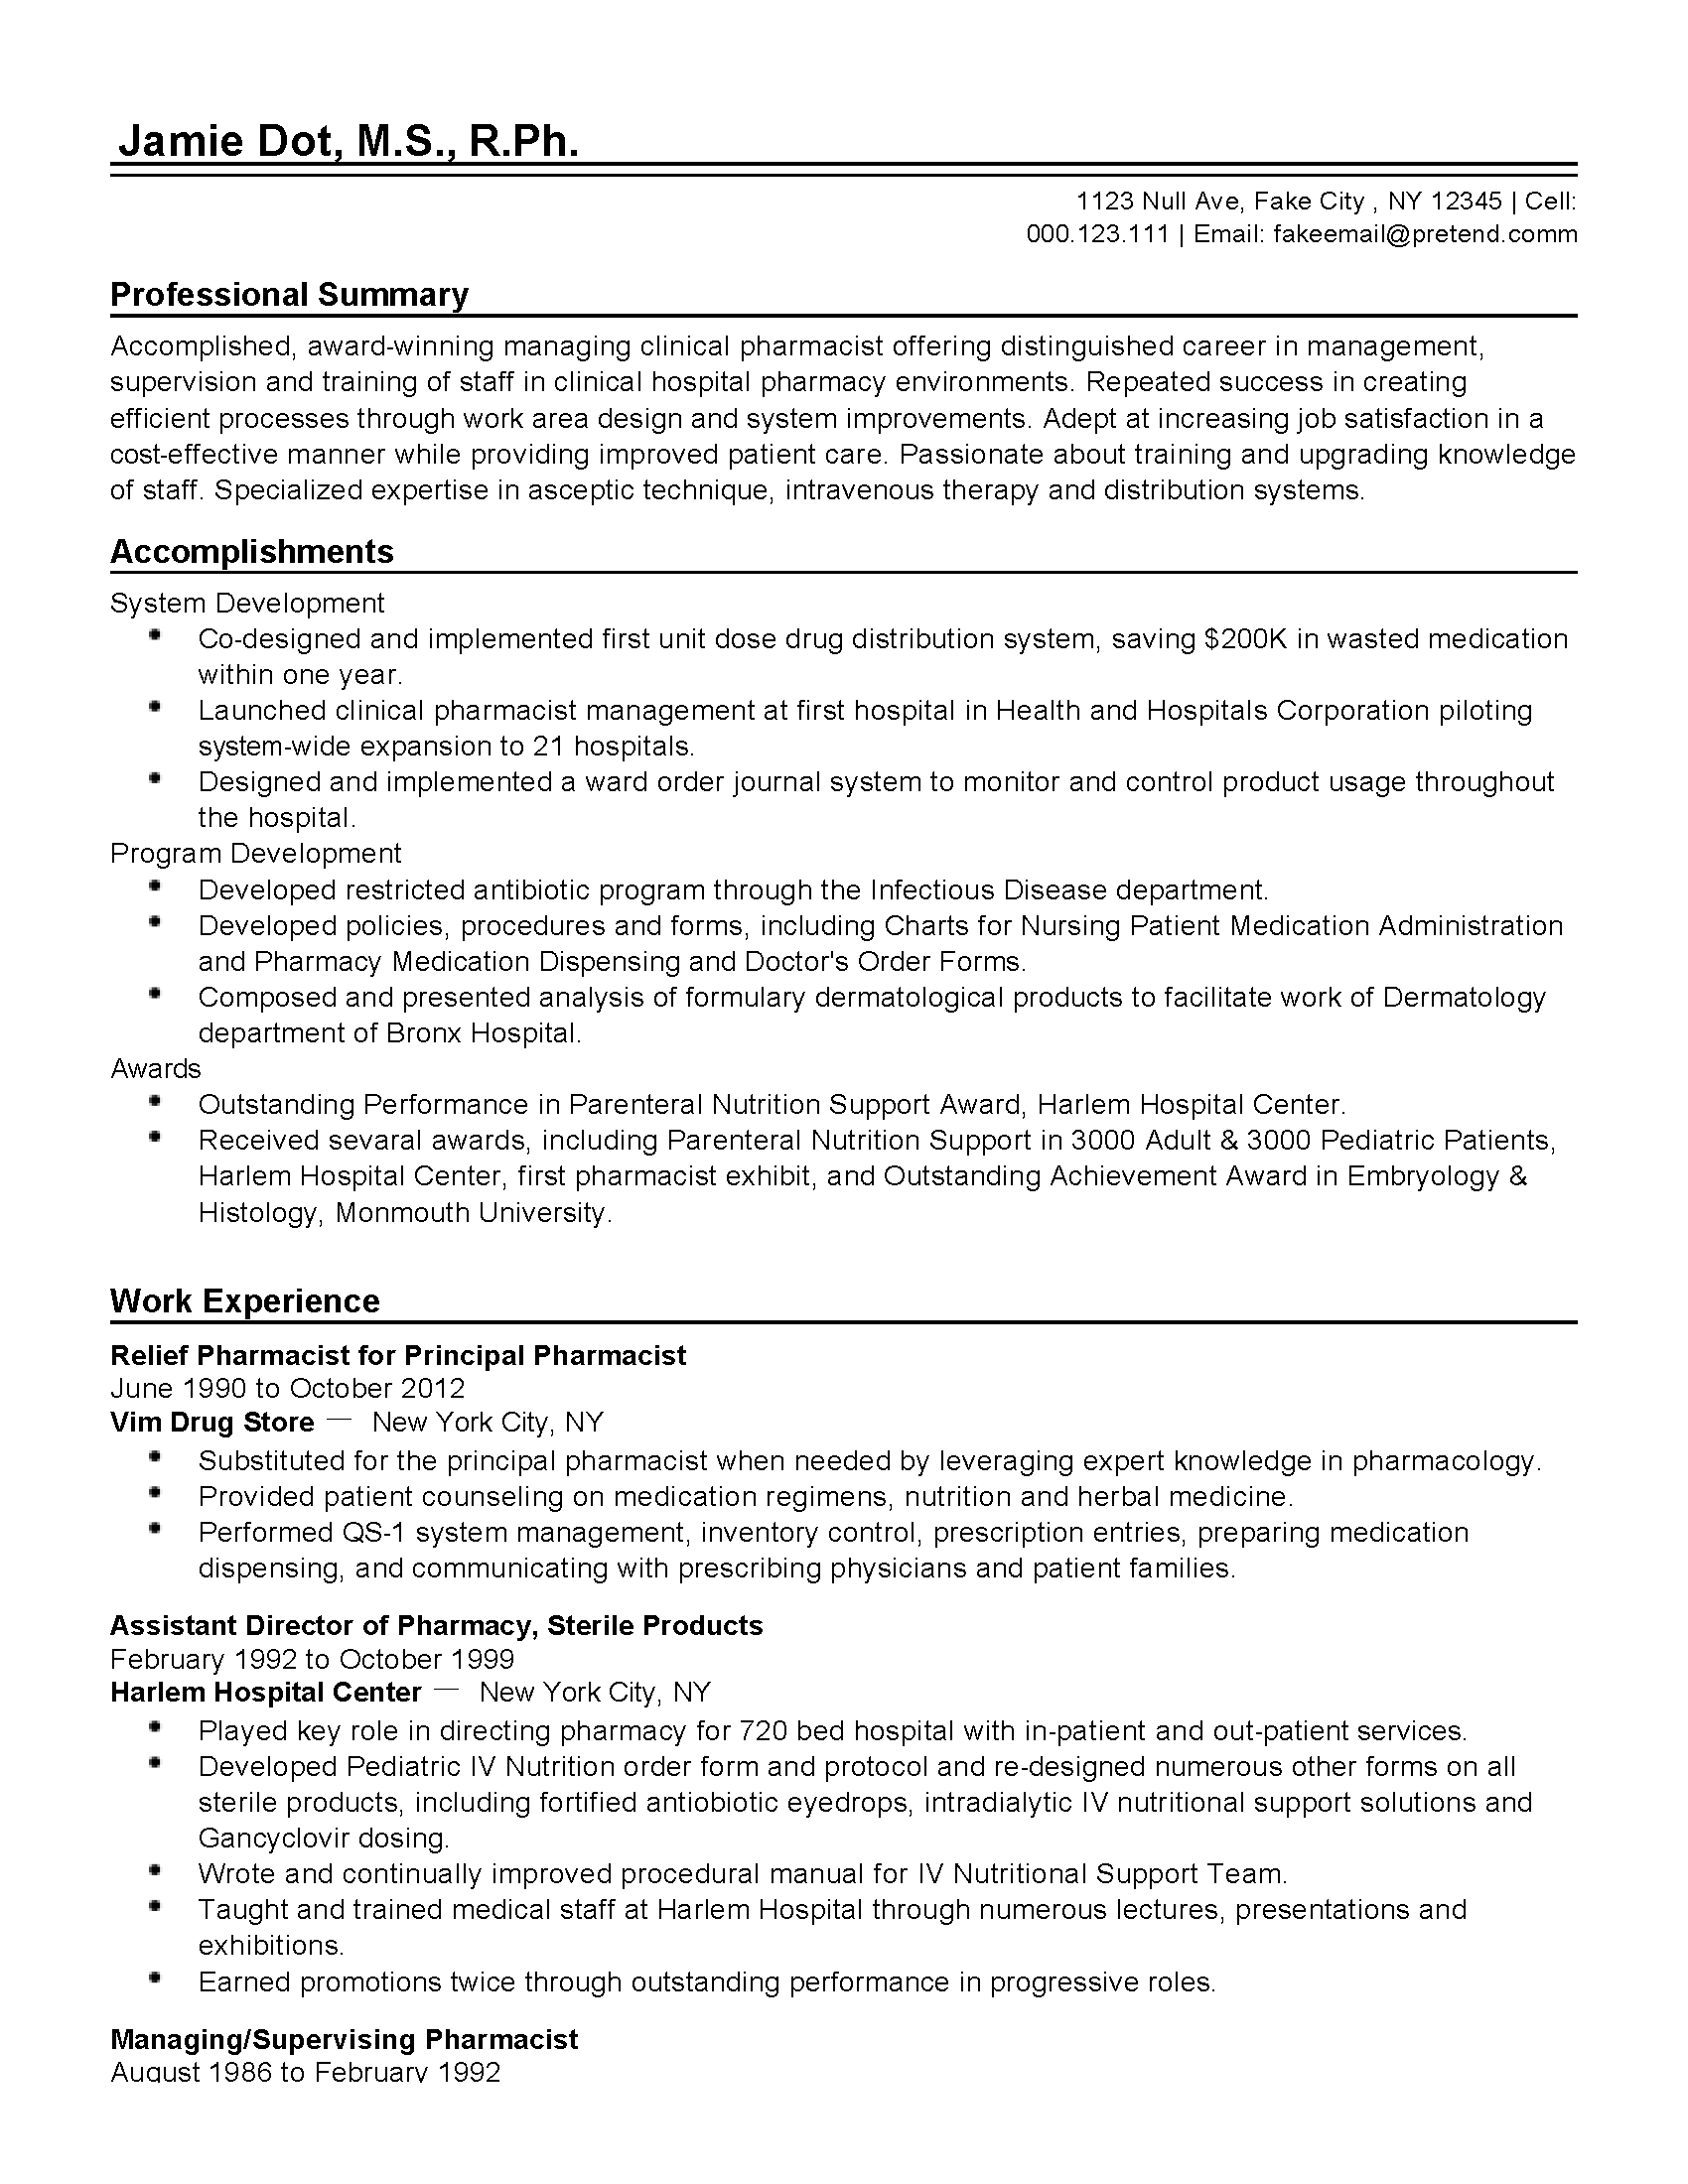 sample resume for personal assistant to ceo executive assistant professional resume for sherry denend page 1